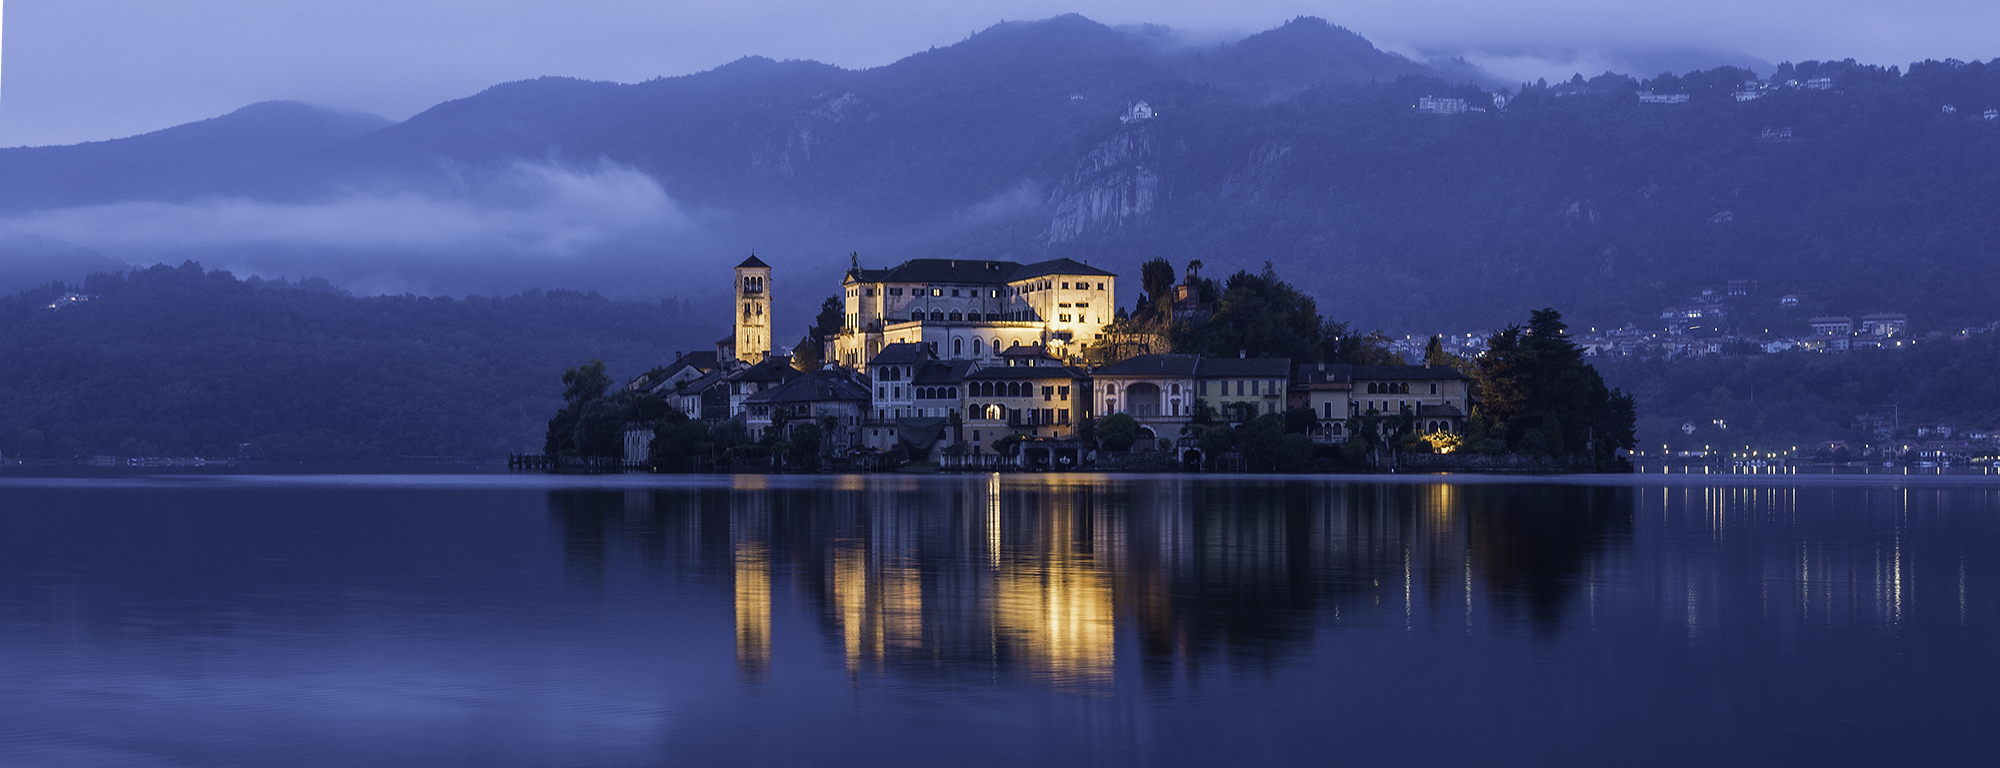 Lake Como To Lake Orta | July 2017 |  4 SPOTS OPEN